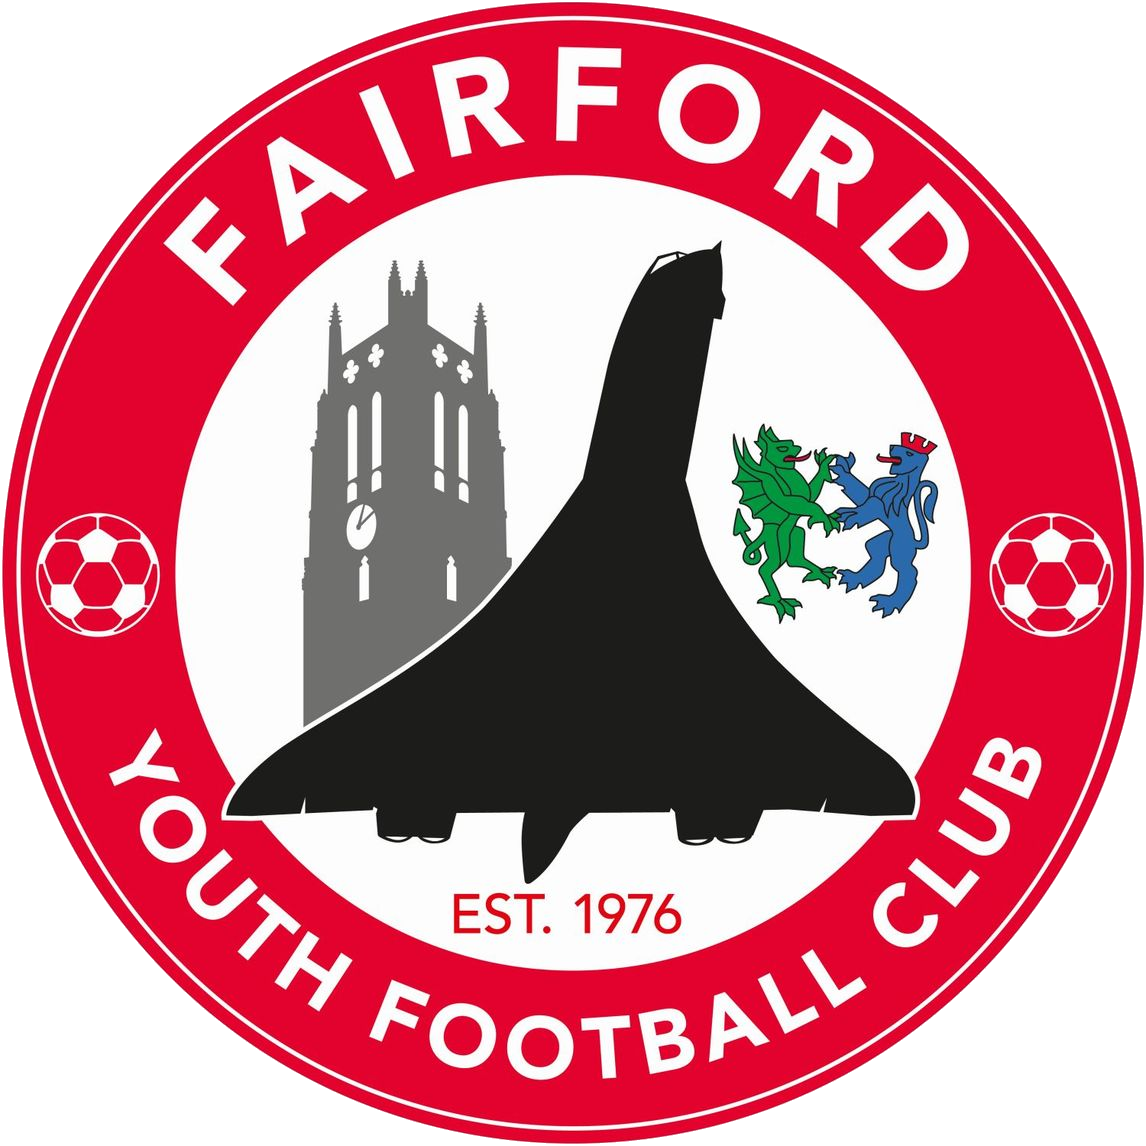 Fairford Youth FC